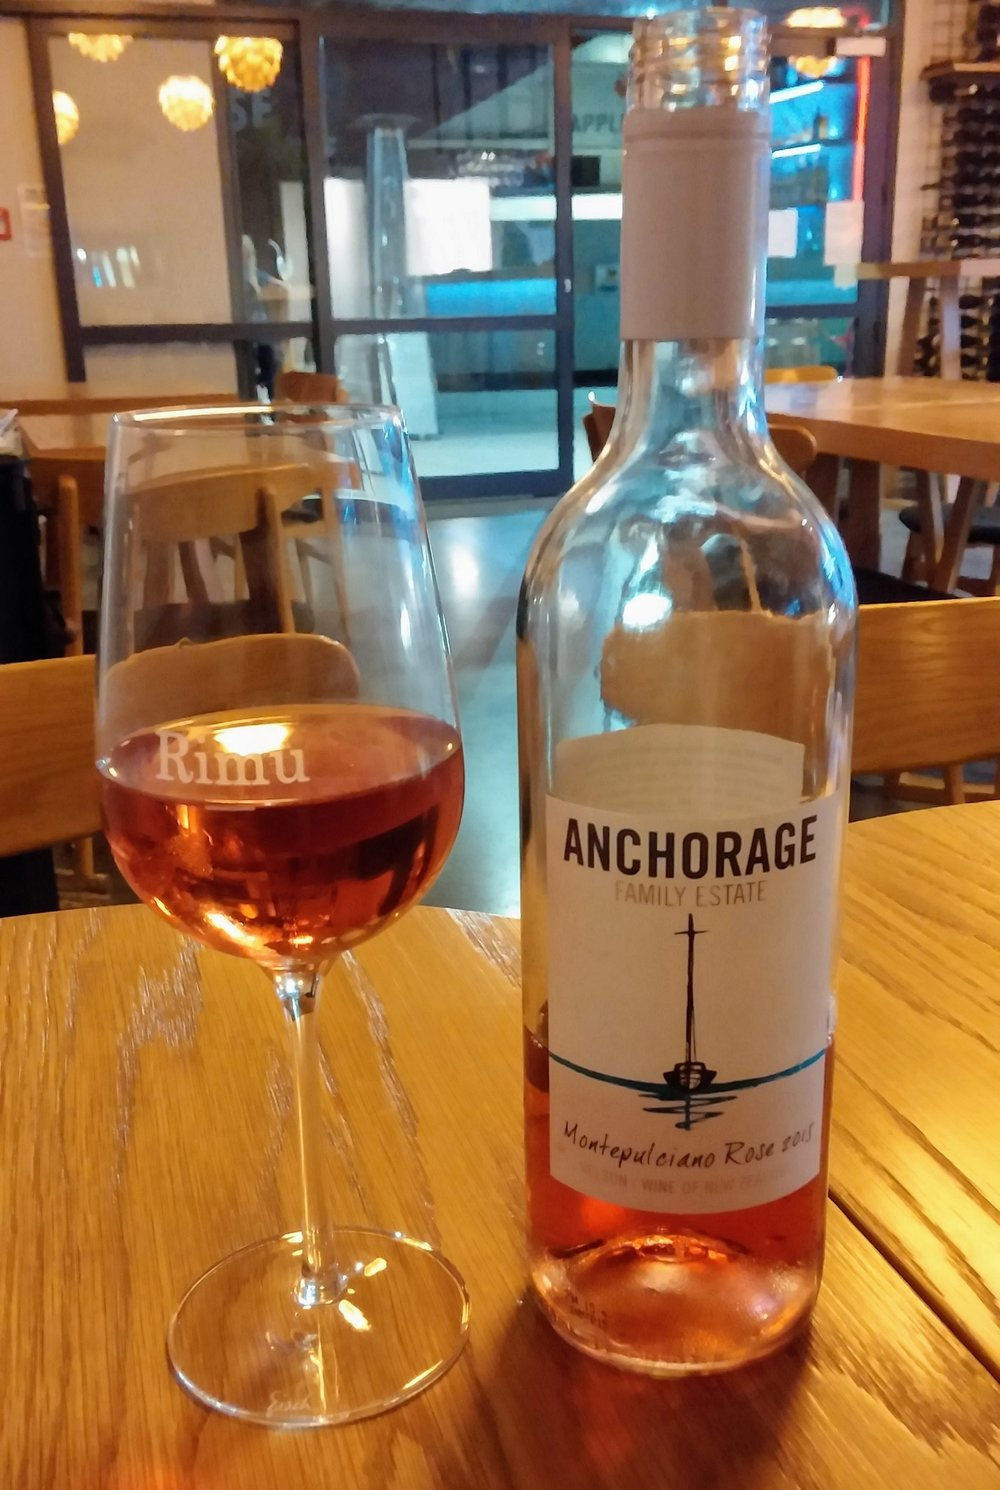 Anchorage Rosé at Rimu Wine Bar